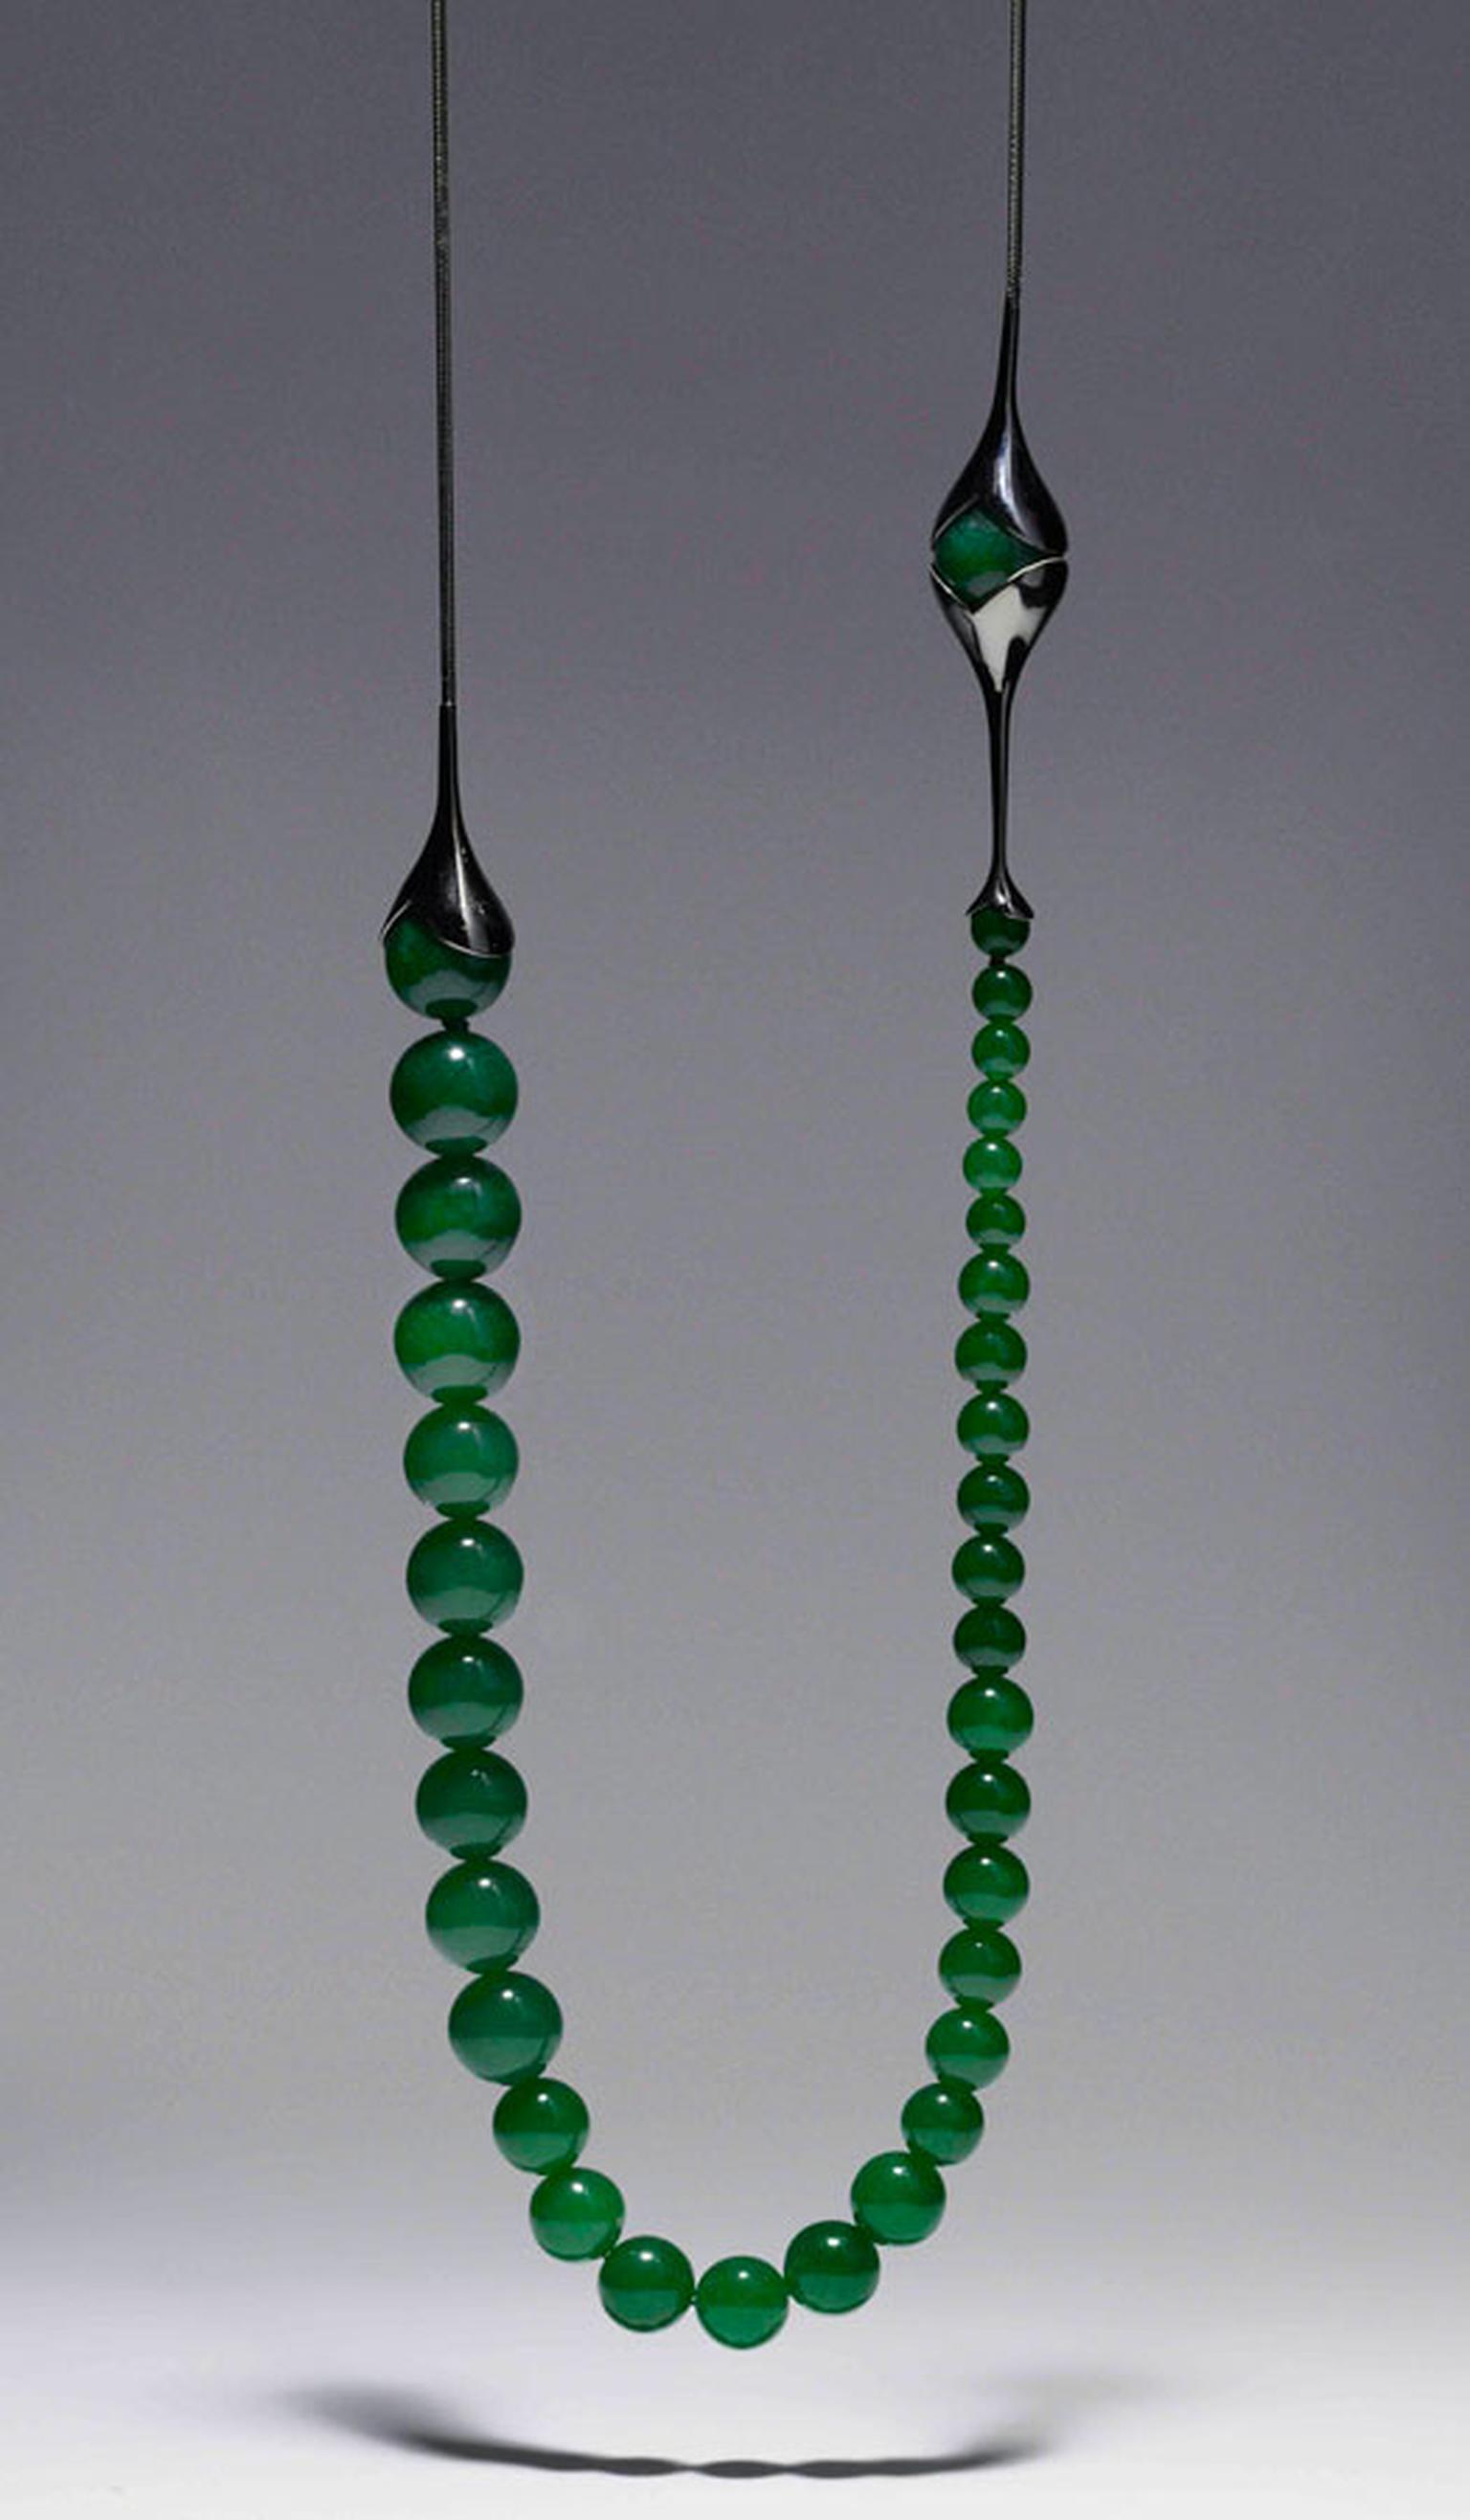 Fernando_Jorge_Swallow-Jade-Necklace